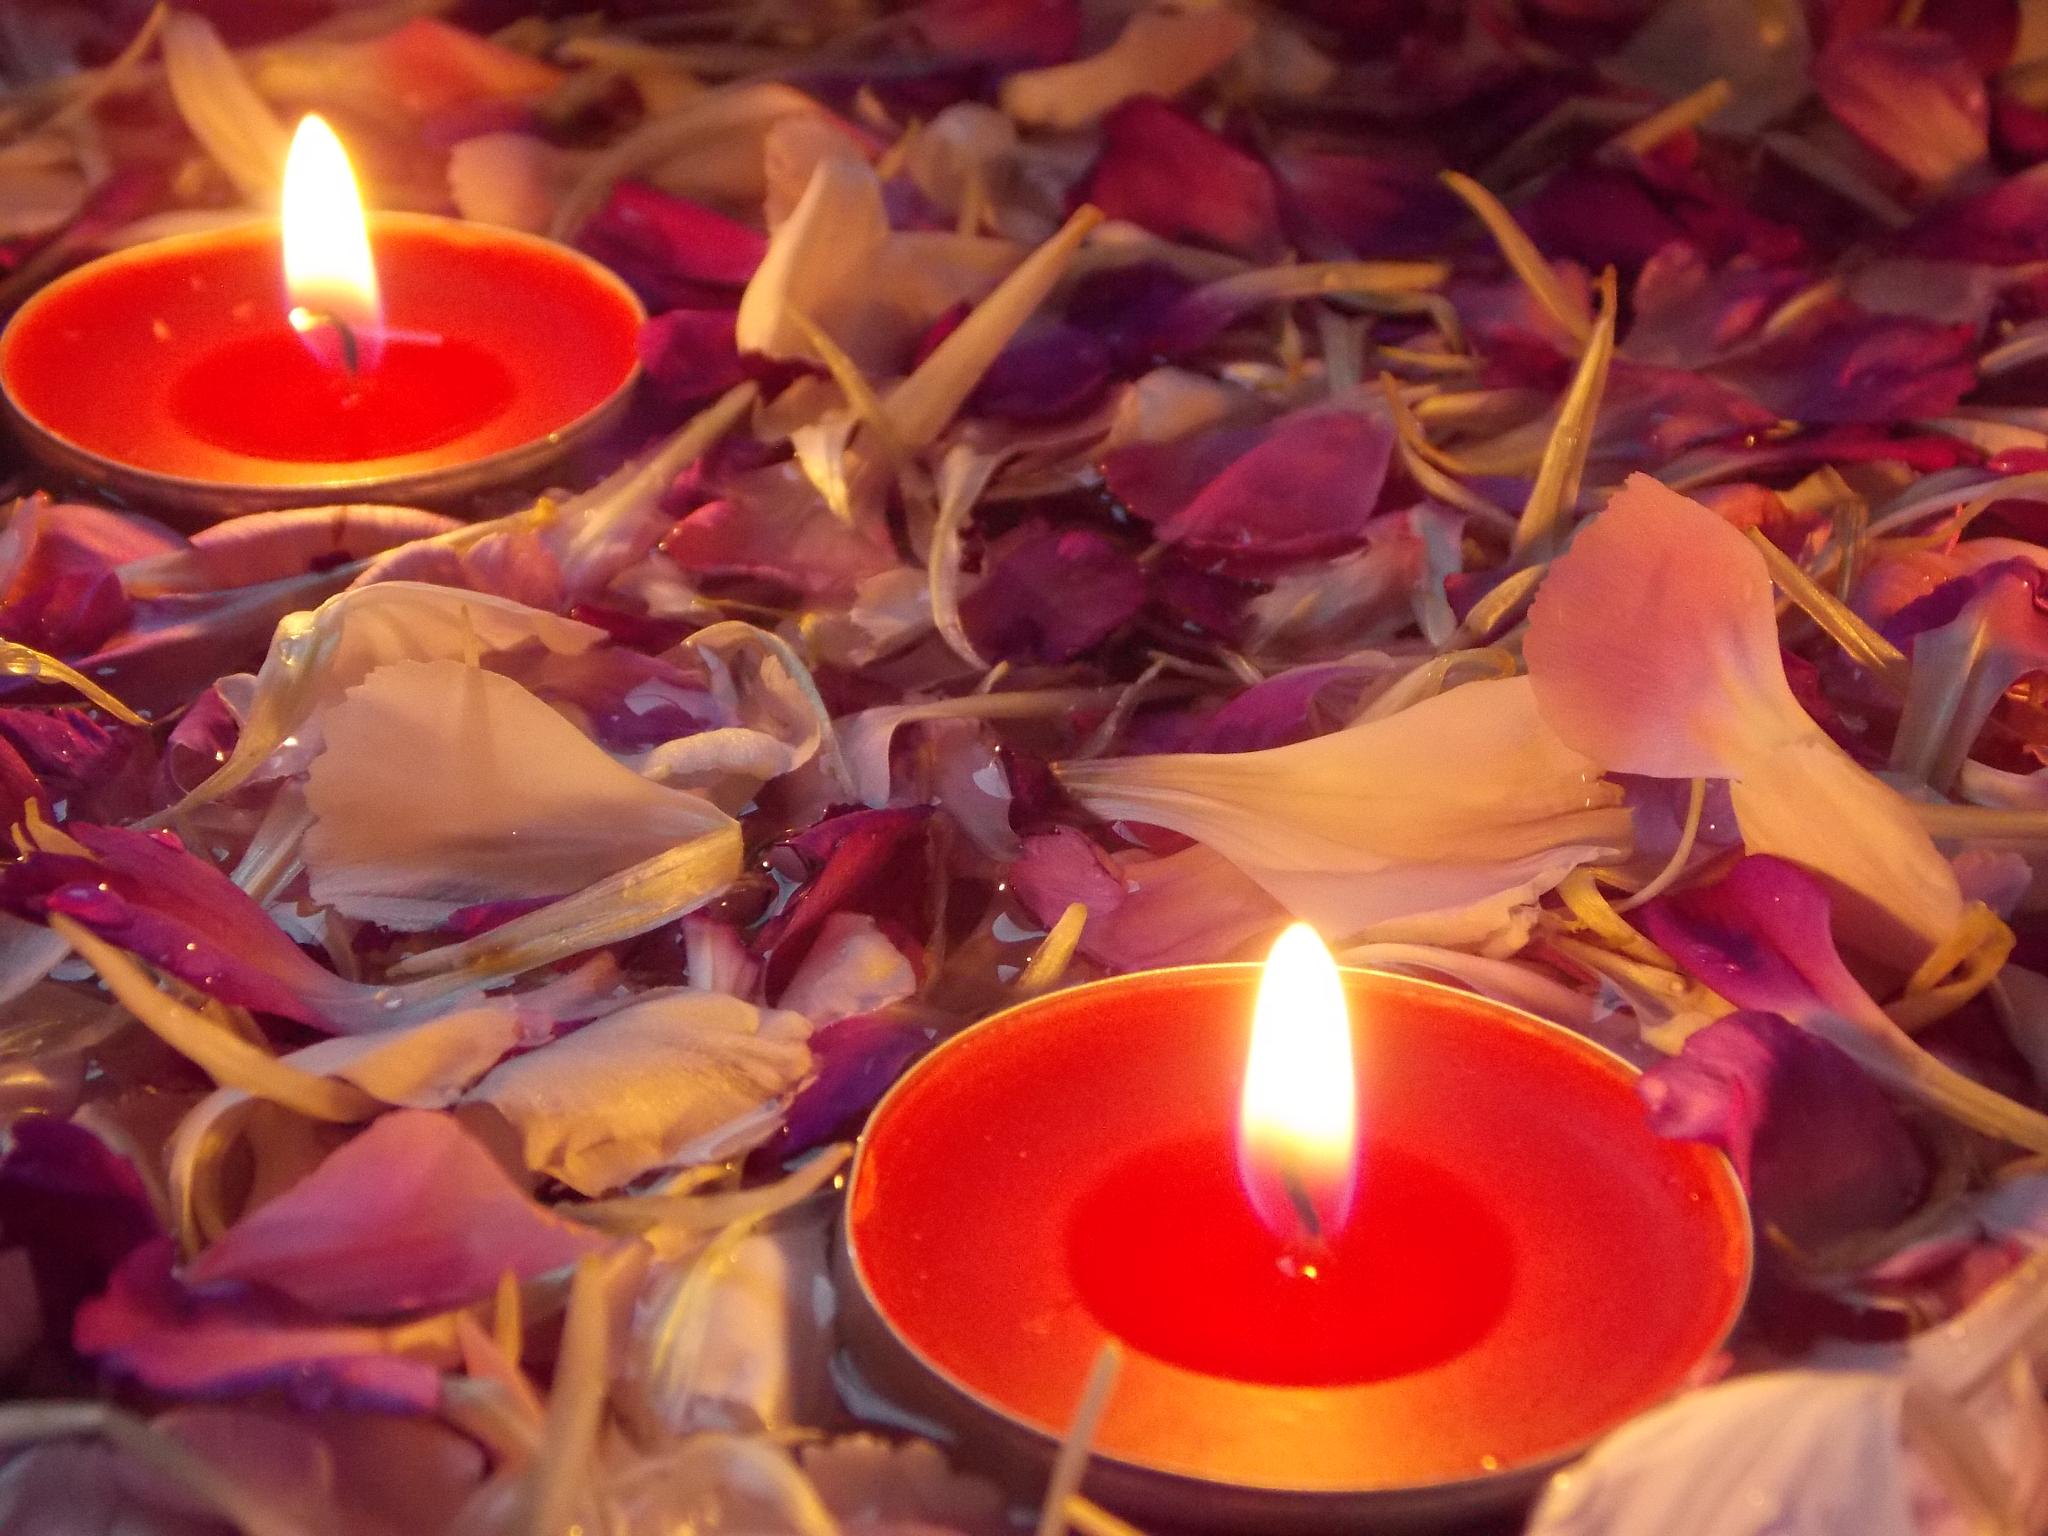 Petals by Candle light by Esther Allberry